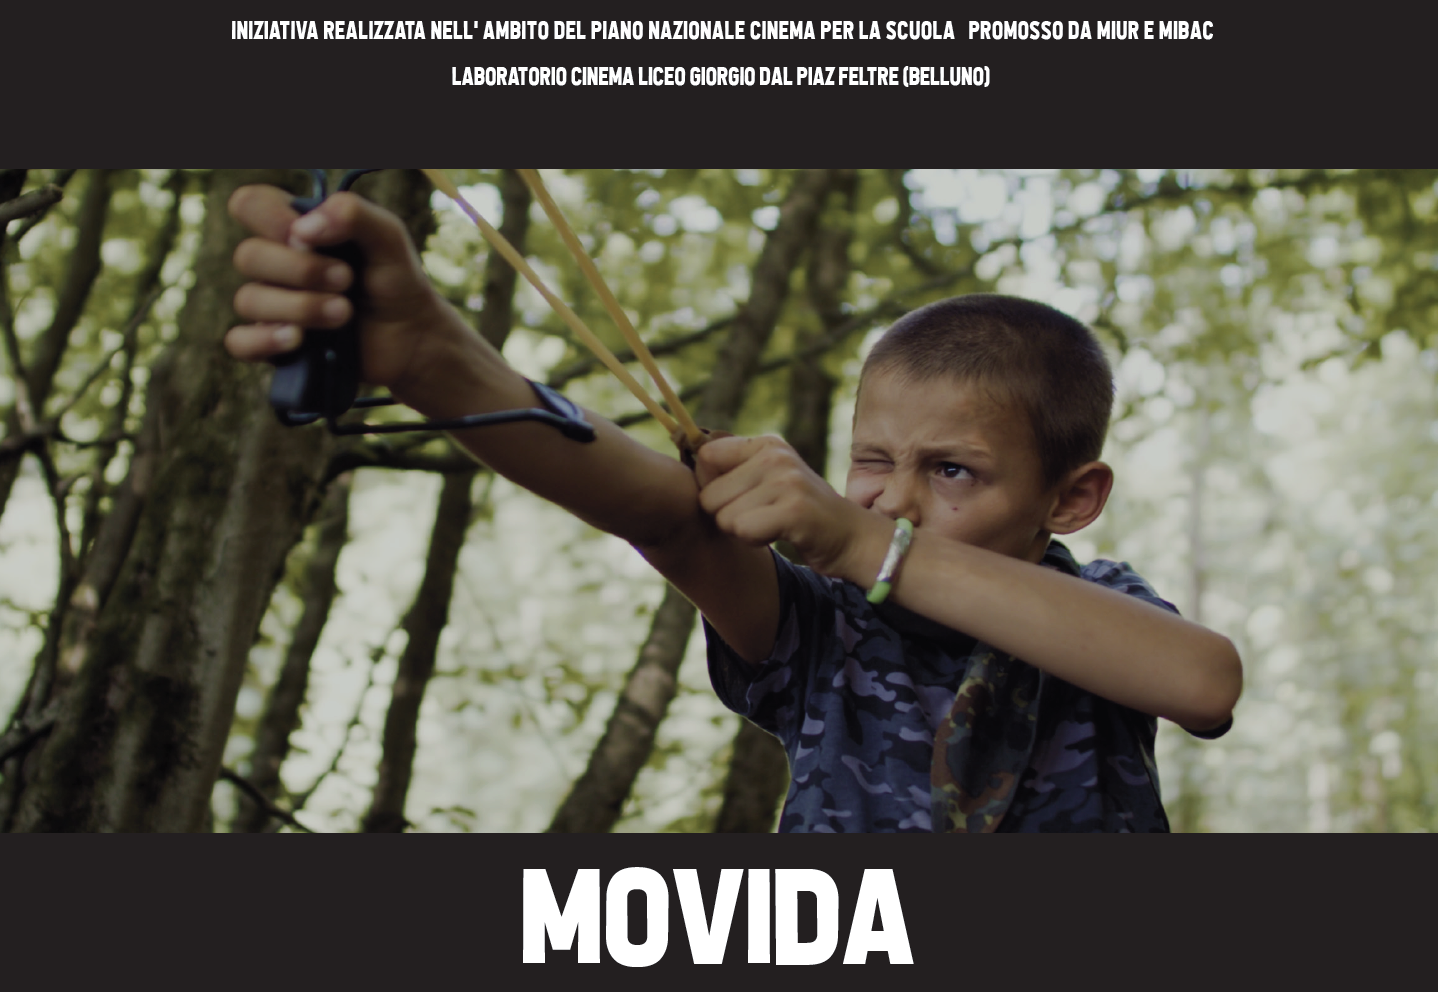 movida-film-liceo-dalpiaz-feltre